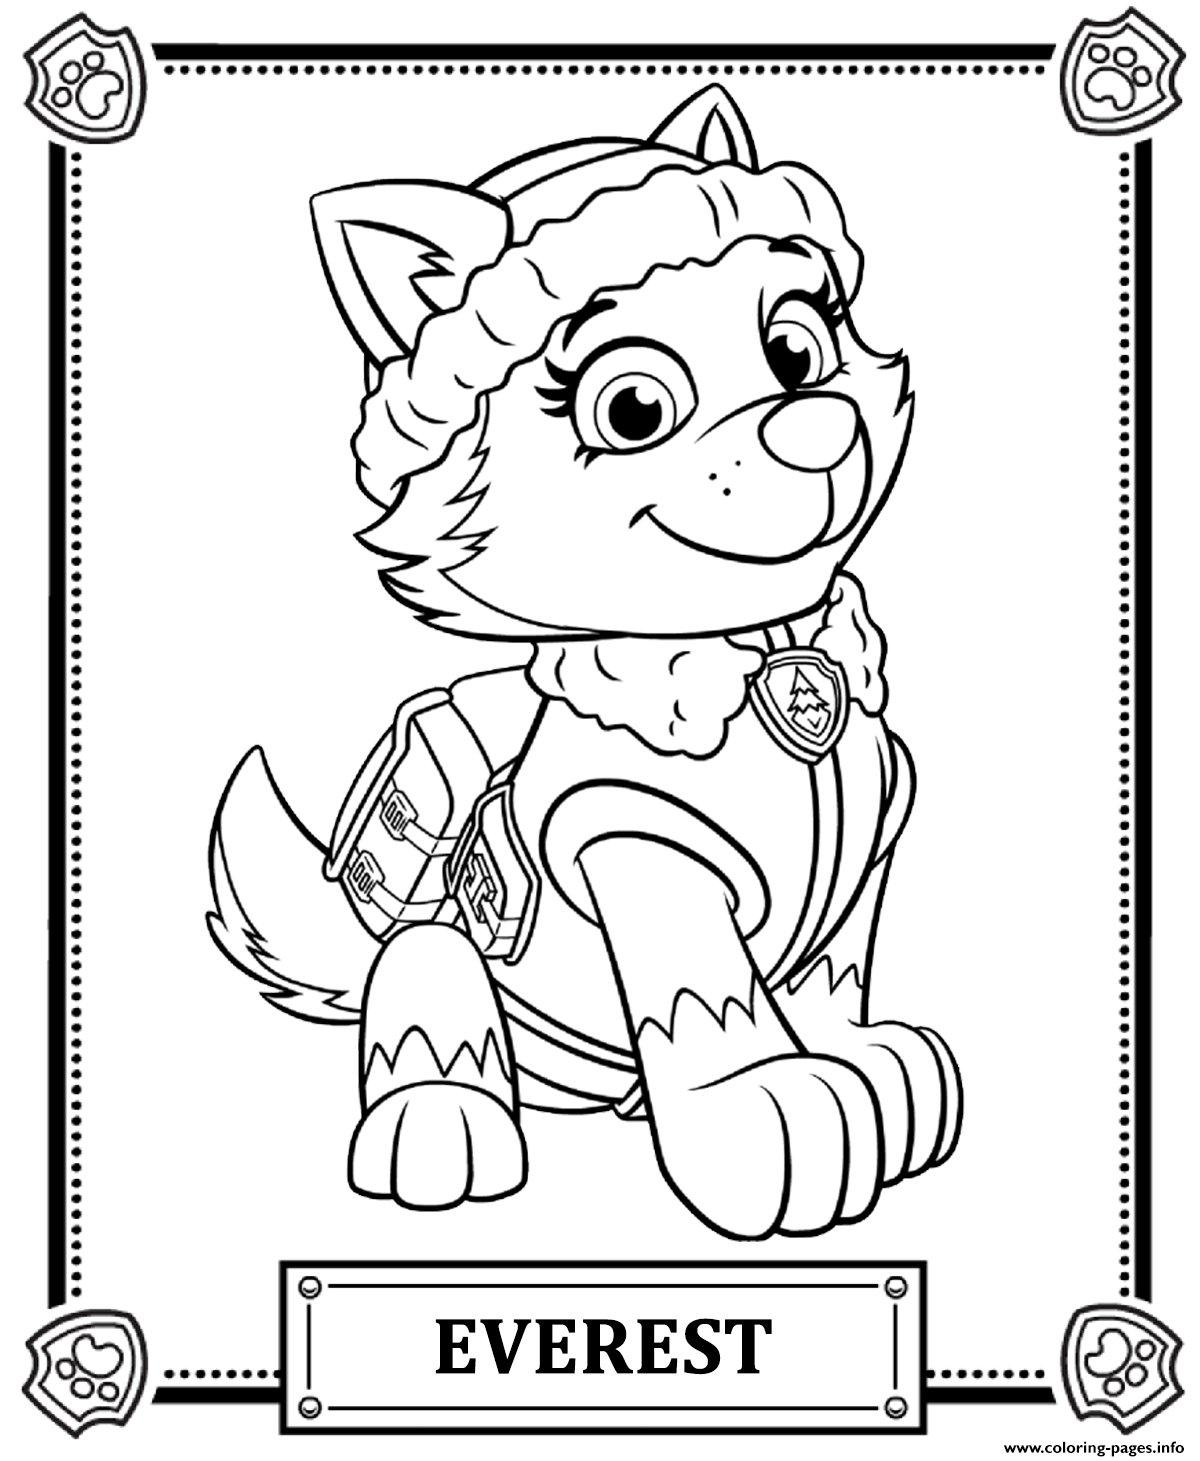 Paw Patrol Everest Colouring Book To Print Free 2016 07 21